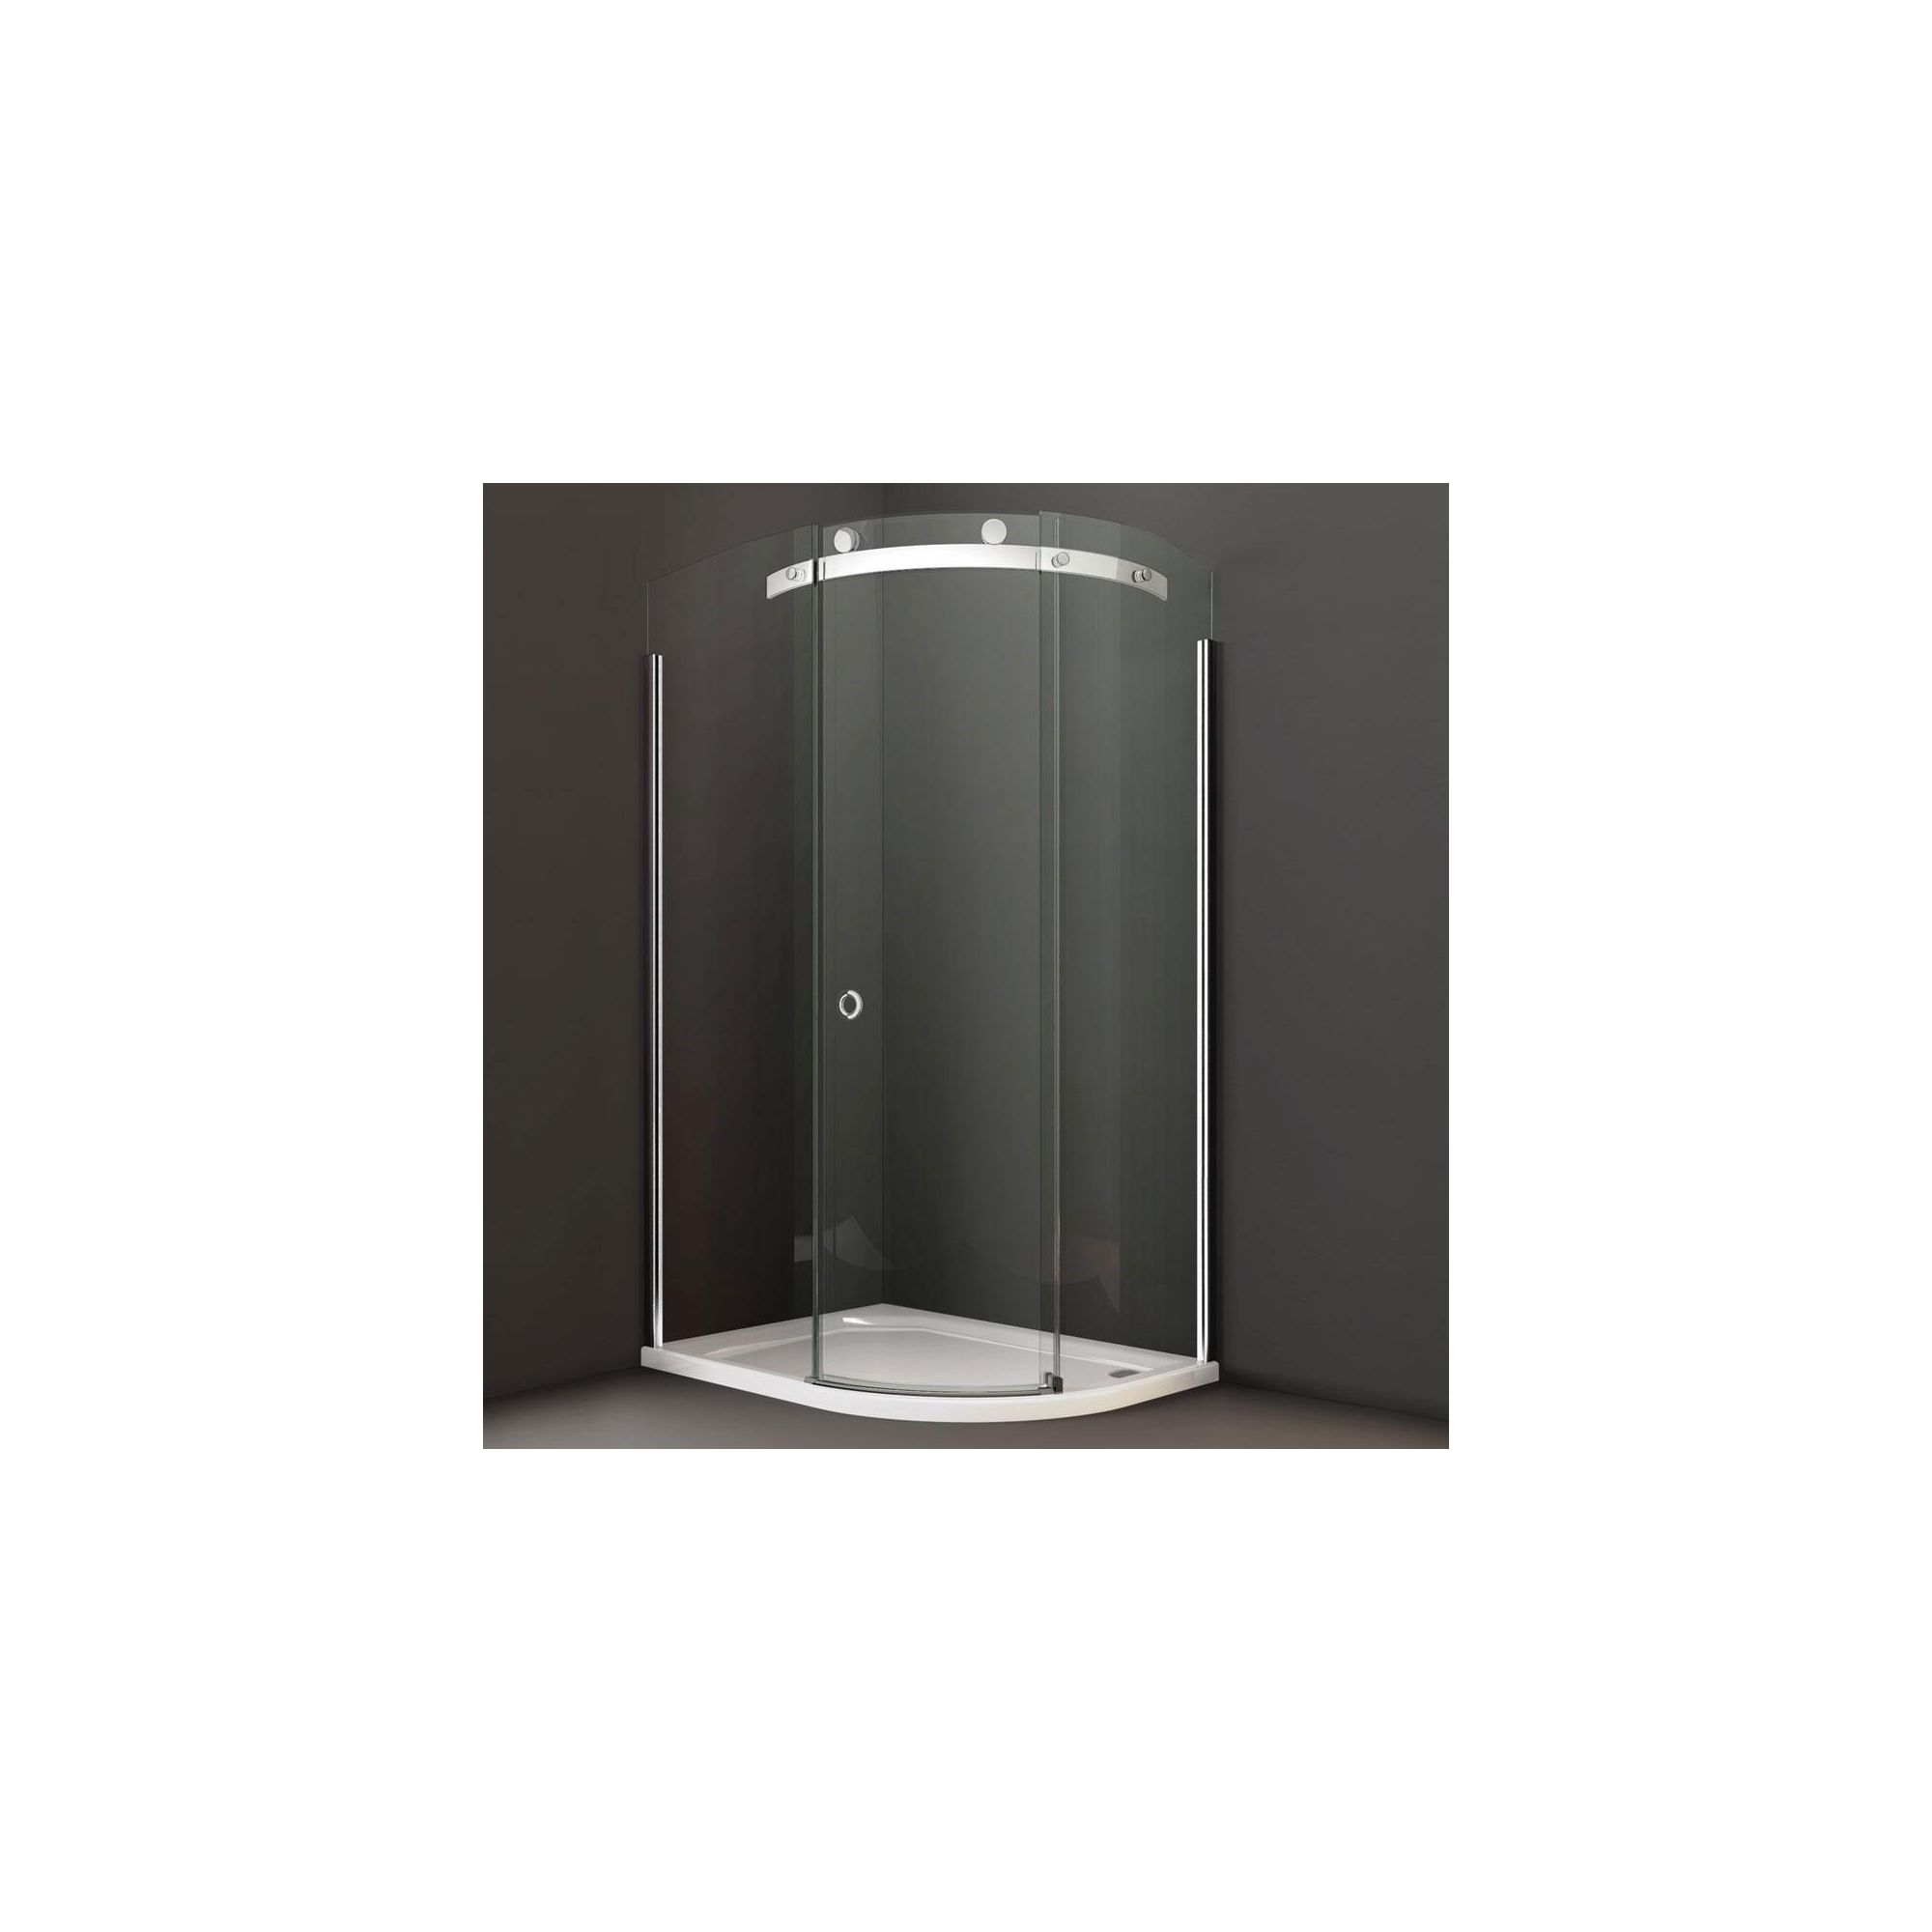 Merlyn Series 10 Offset Quadrant Shower Door, 1200mm x 900mm, 10mm Clear Glass, Right Handed at Tesco Direct